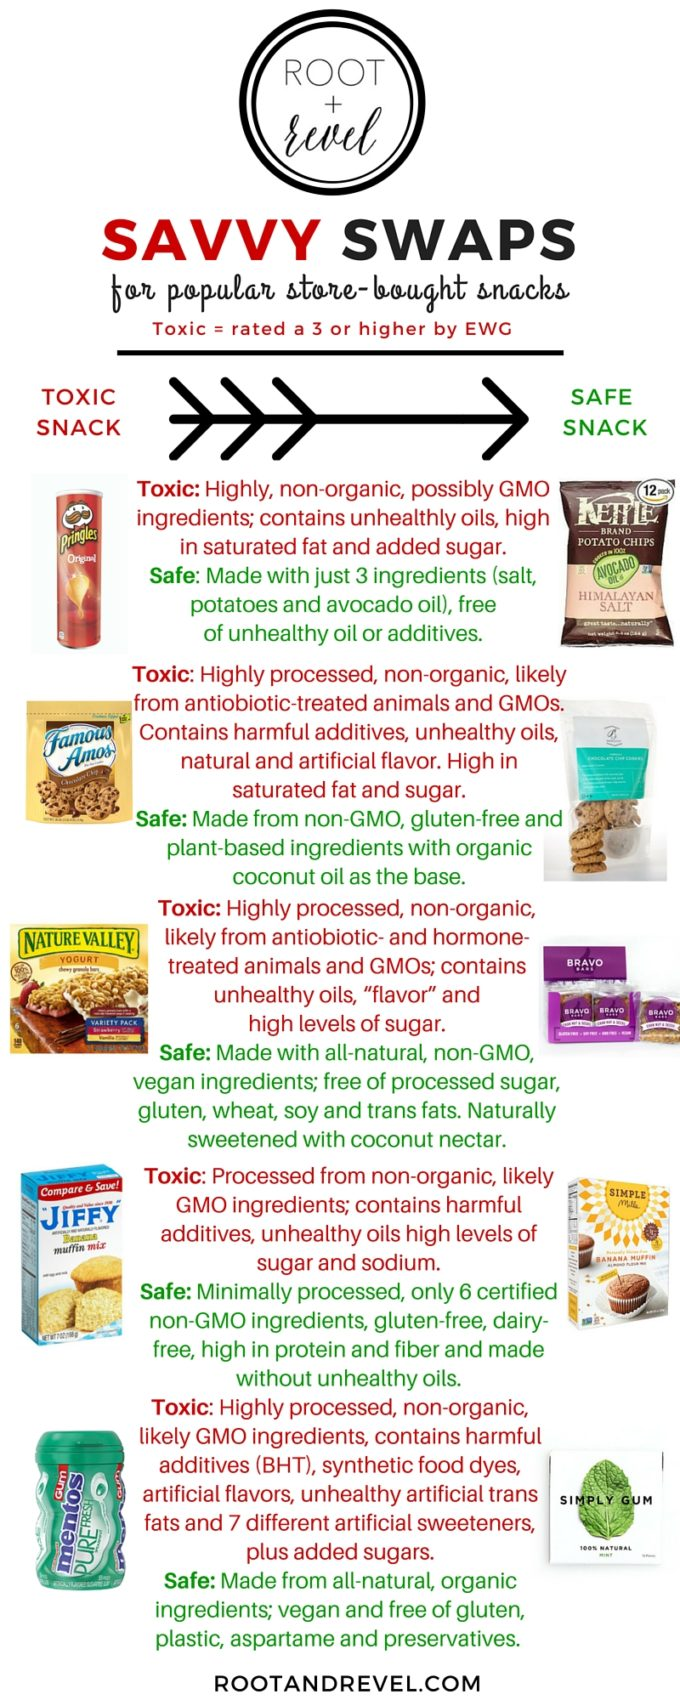 Swap toxic, unhealthy snacks full of artificial sweeteners, oils, flavors and colors for real-food-based, healthier snacks that are good and good for you.